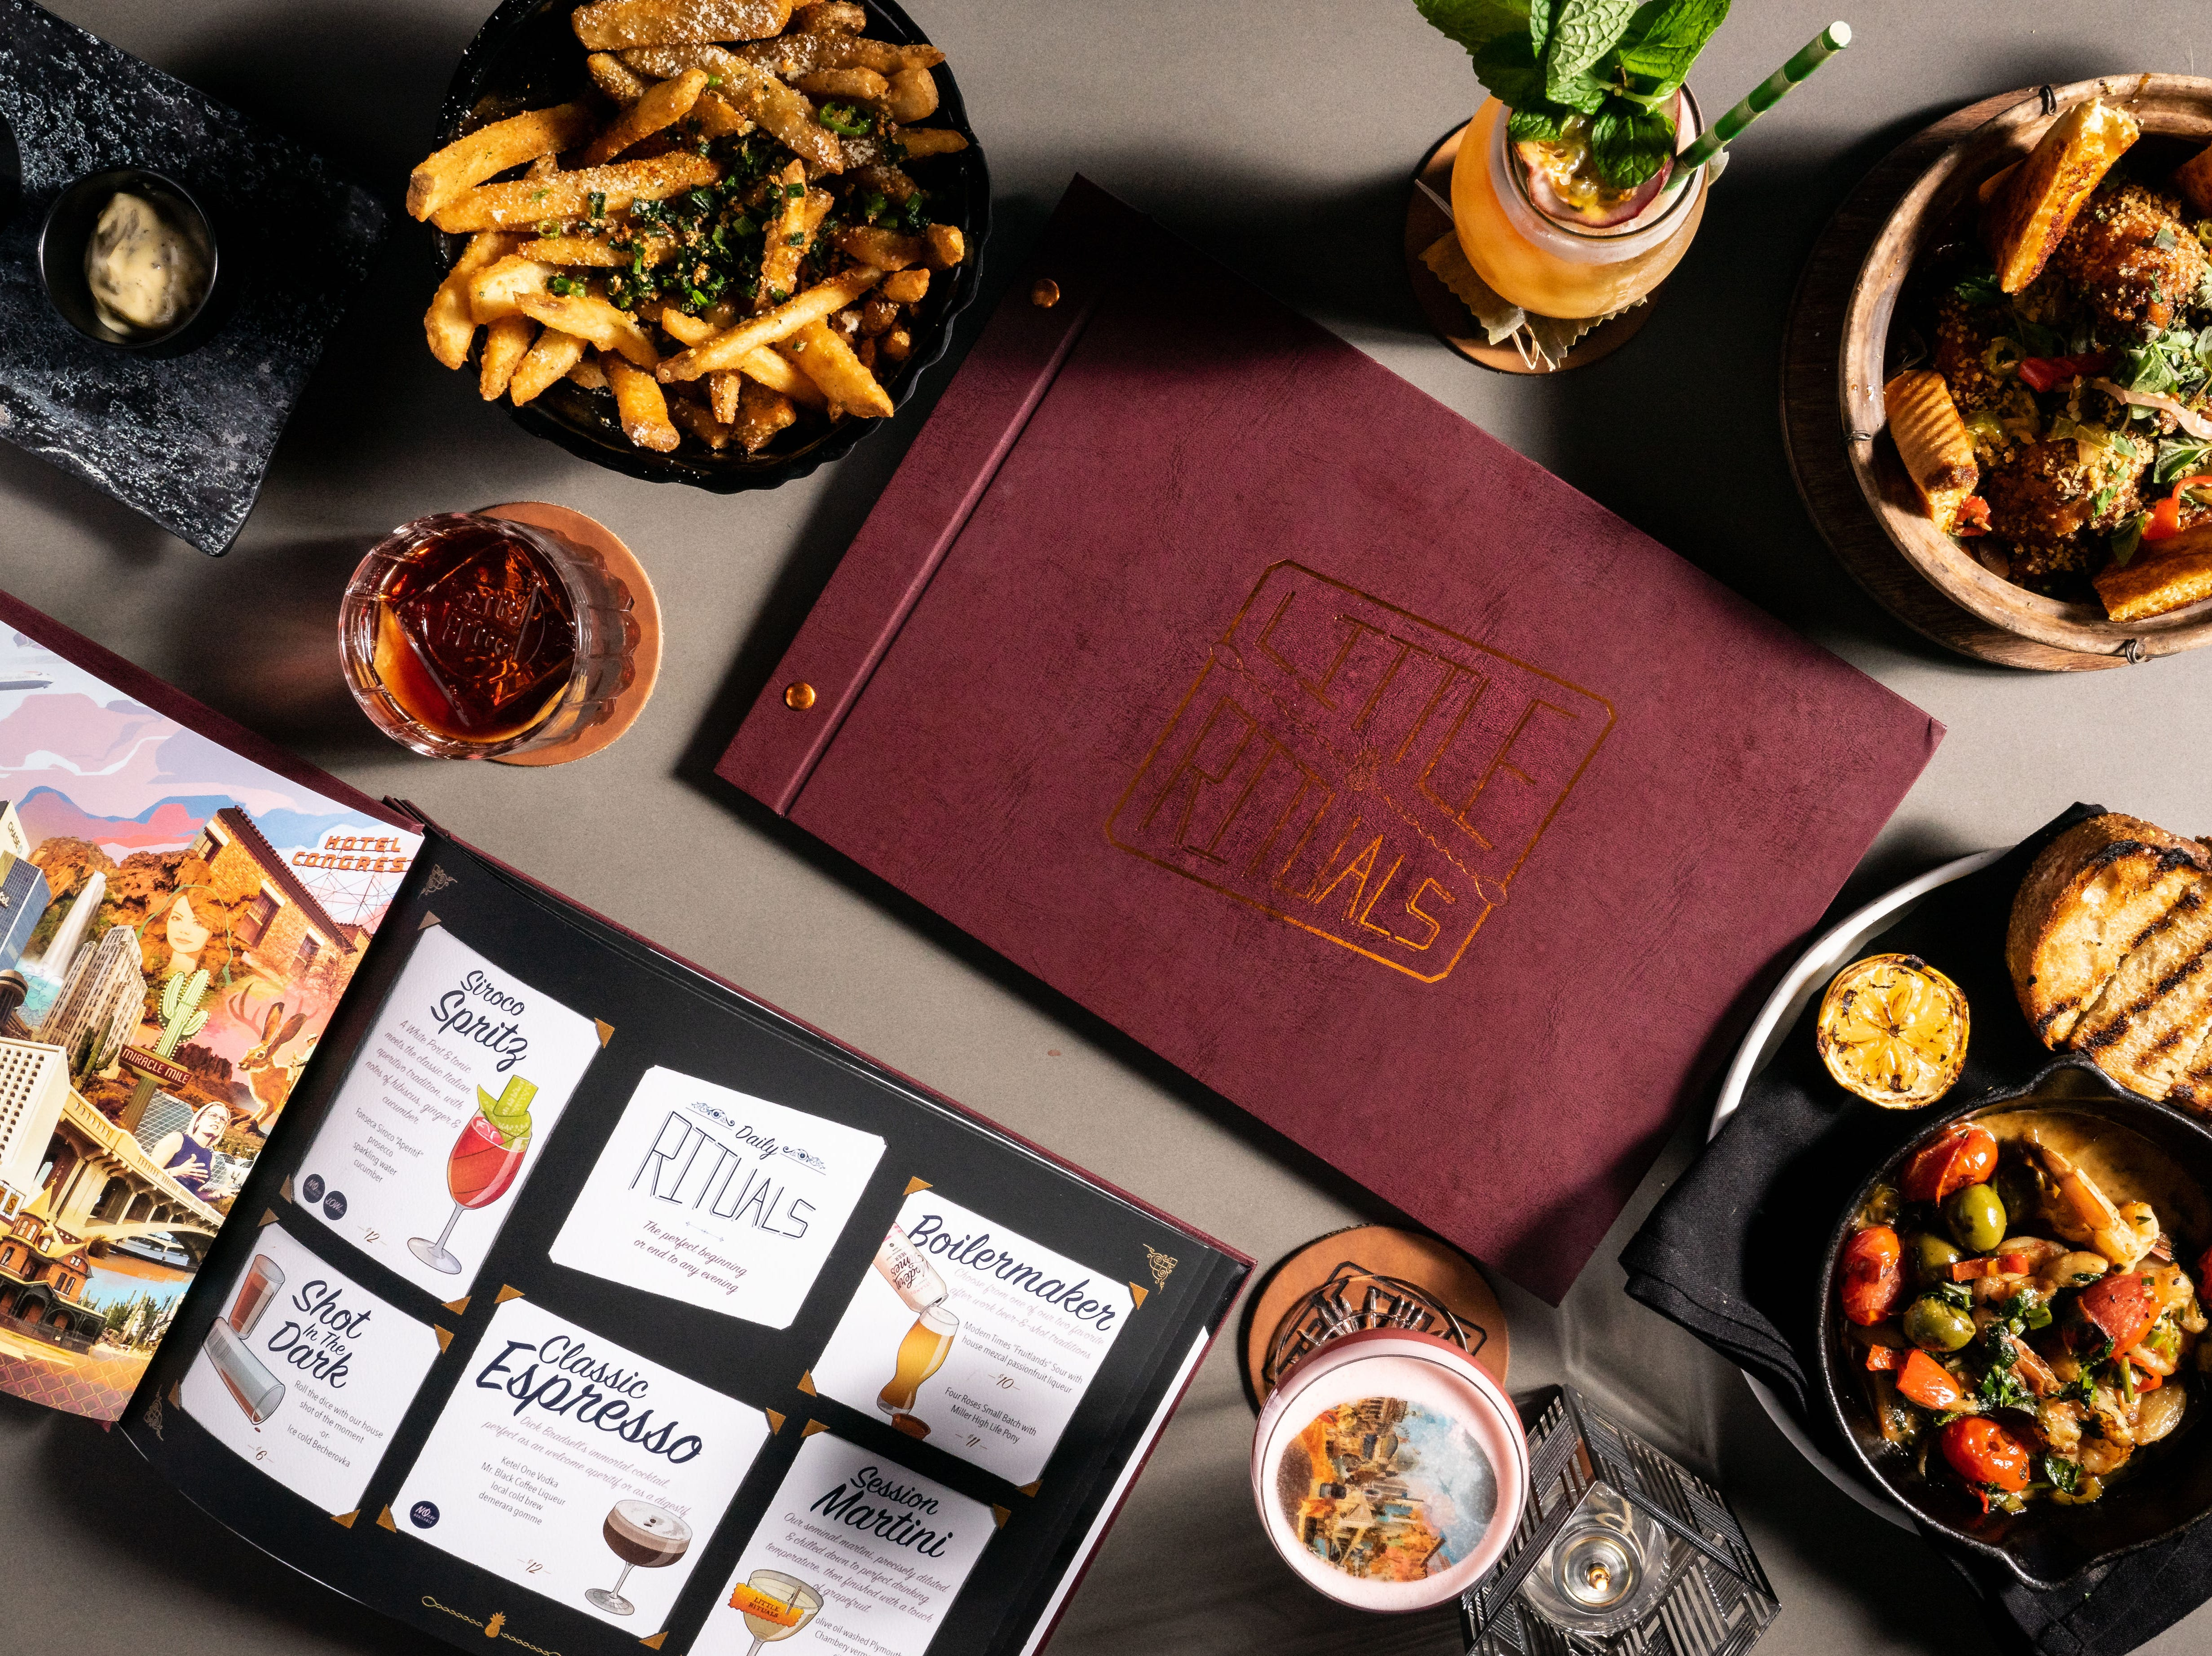 Little Rituals, located inside the Residence Inn/Courtyard by Marriott Phoenix Downtown, is one of the most anticipated bar and restaurants to open in Phoenix in 2019.